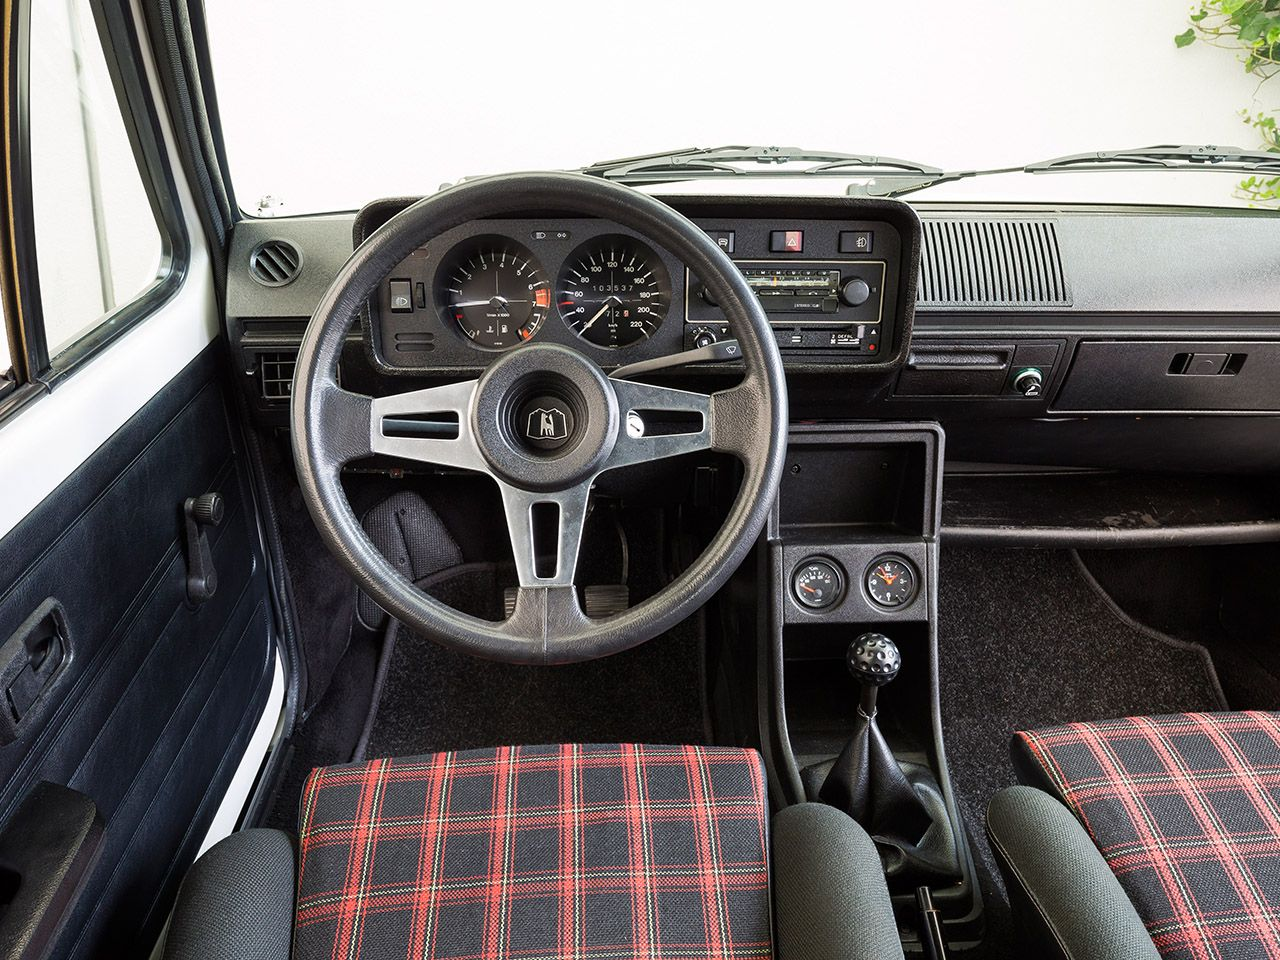 1976 volkswagen golf gti interieur vw mki pinterest volkswagen golf volkswagen et golf. Black Bedroom Furniture Sets. Home Design Ideas